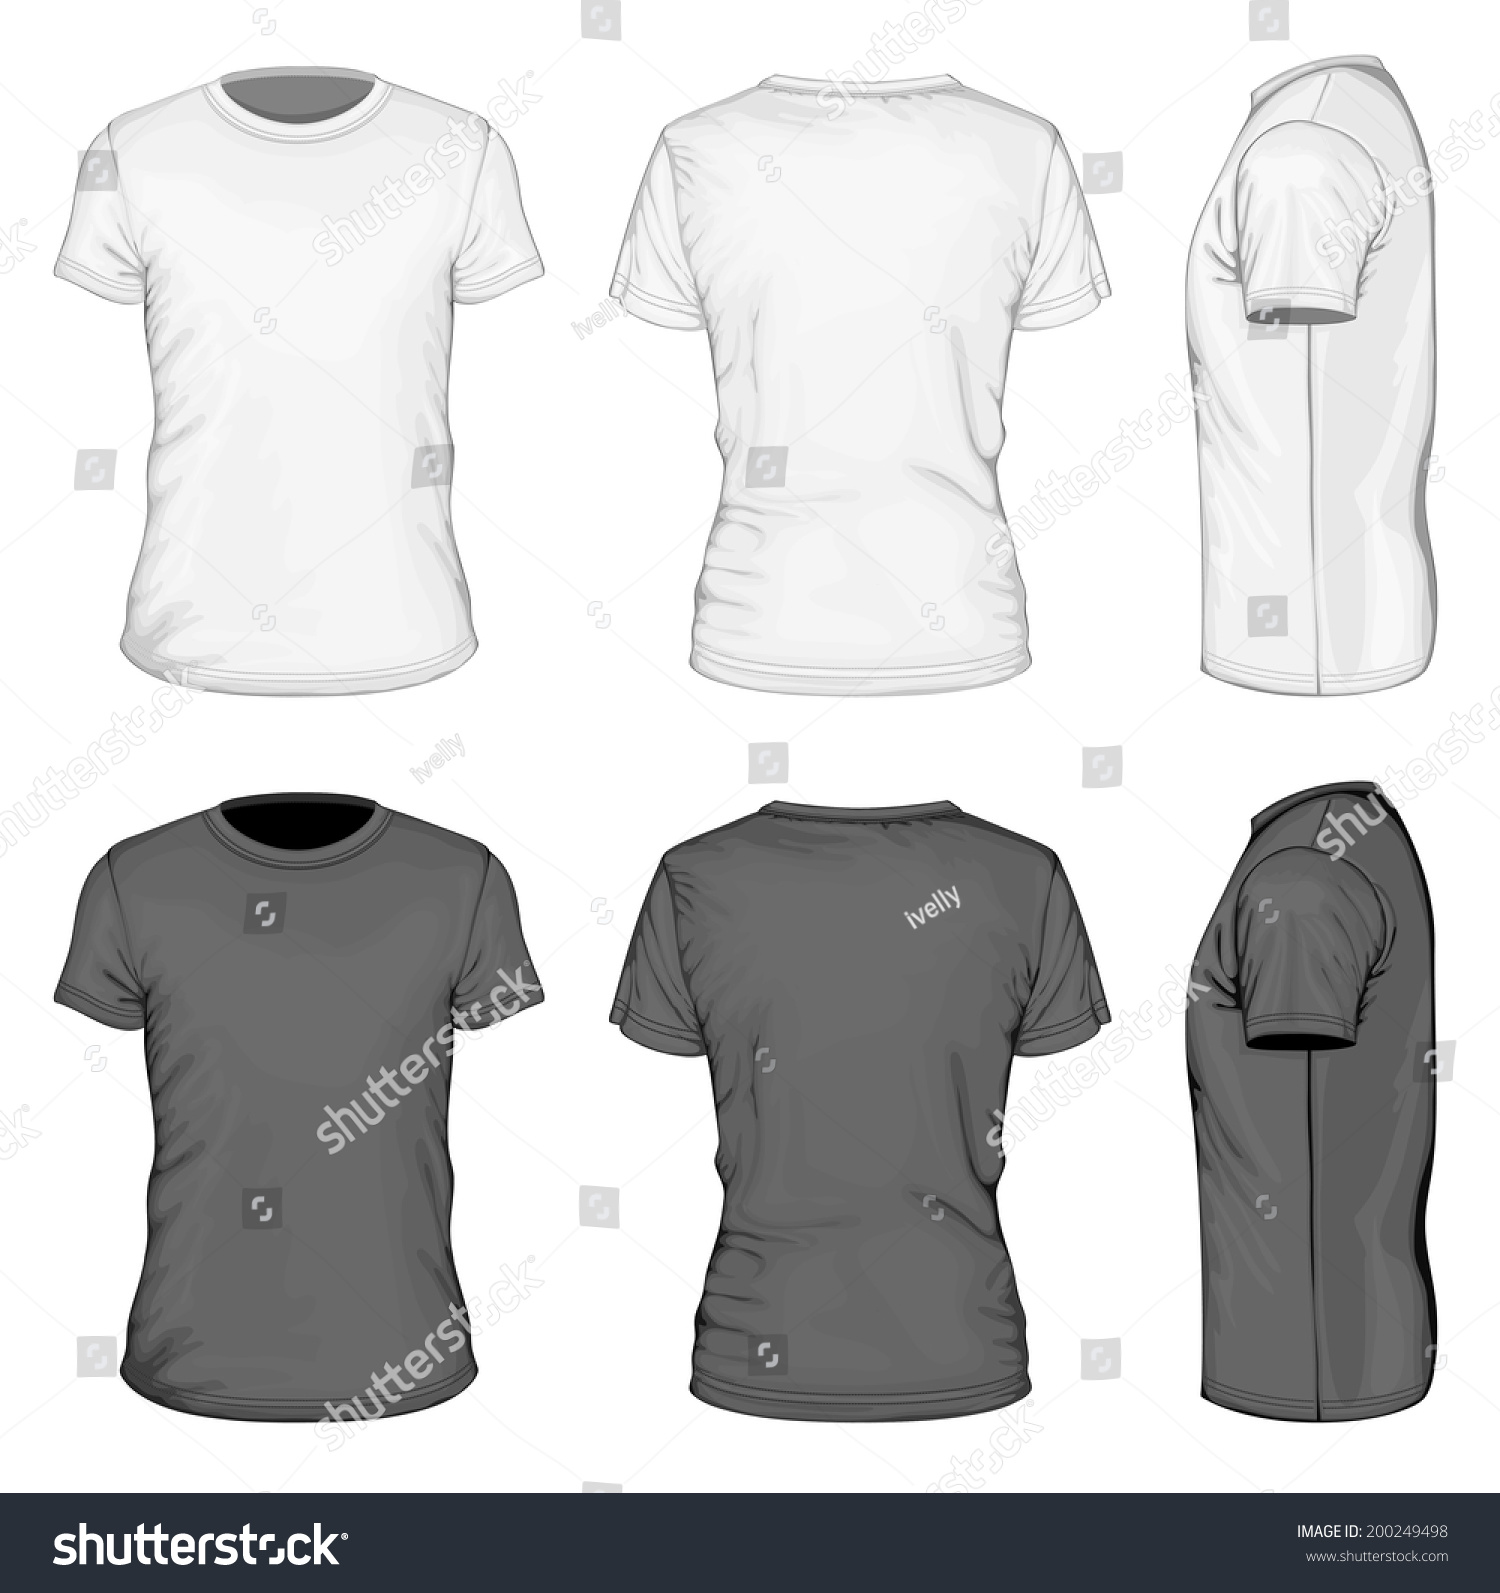 White t shirt front and back template - Men S White And Black Short Sleeve T Shirt Design Templates Front Back